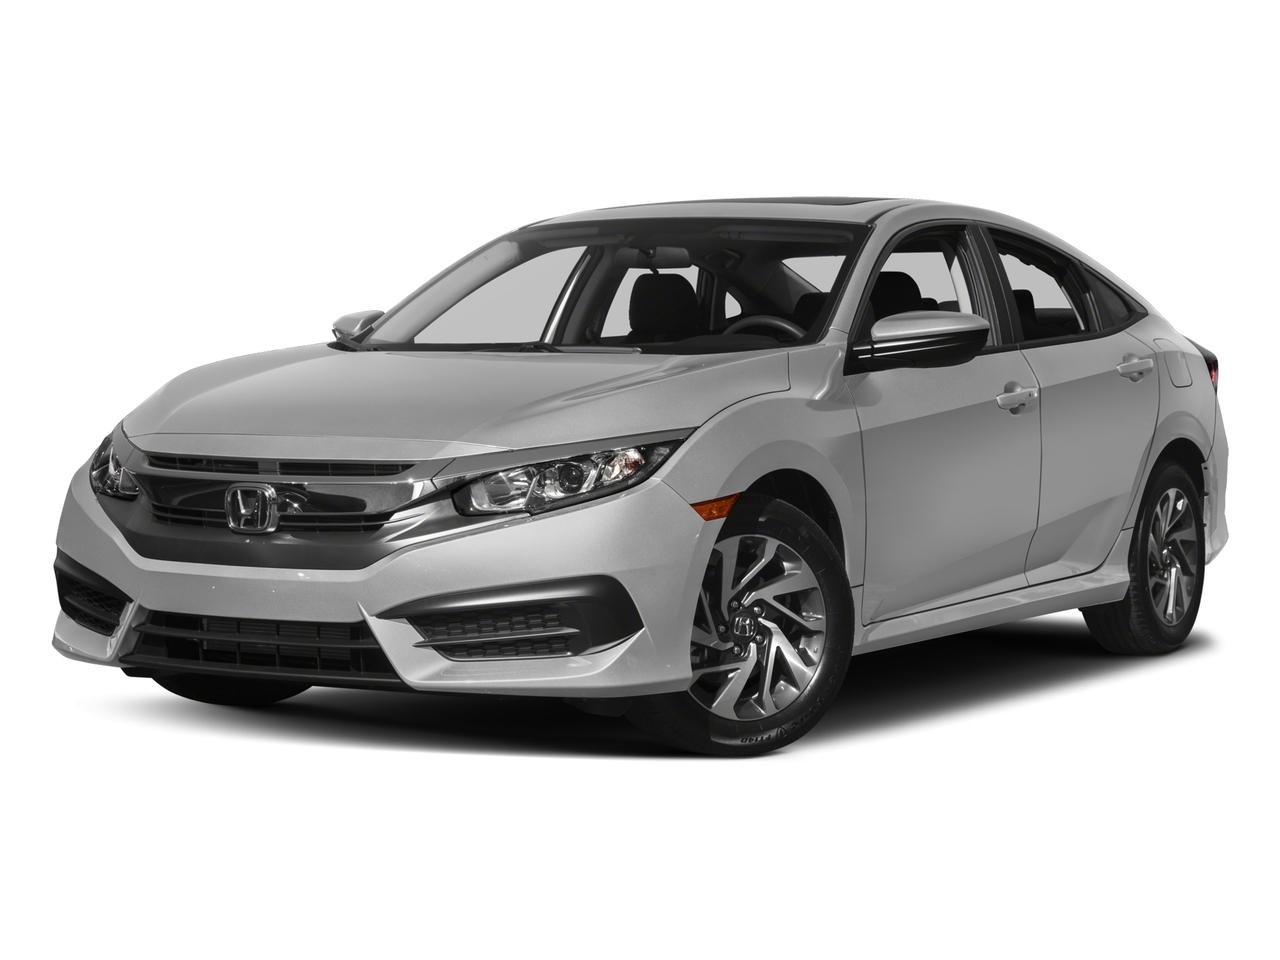 2017 Honda Civic Sedan Vehicle Photo in Pittsburg, CA 94565